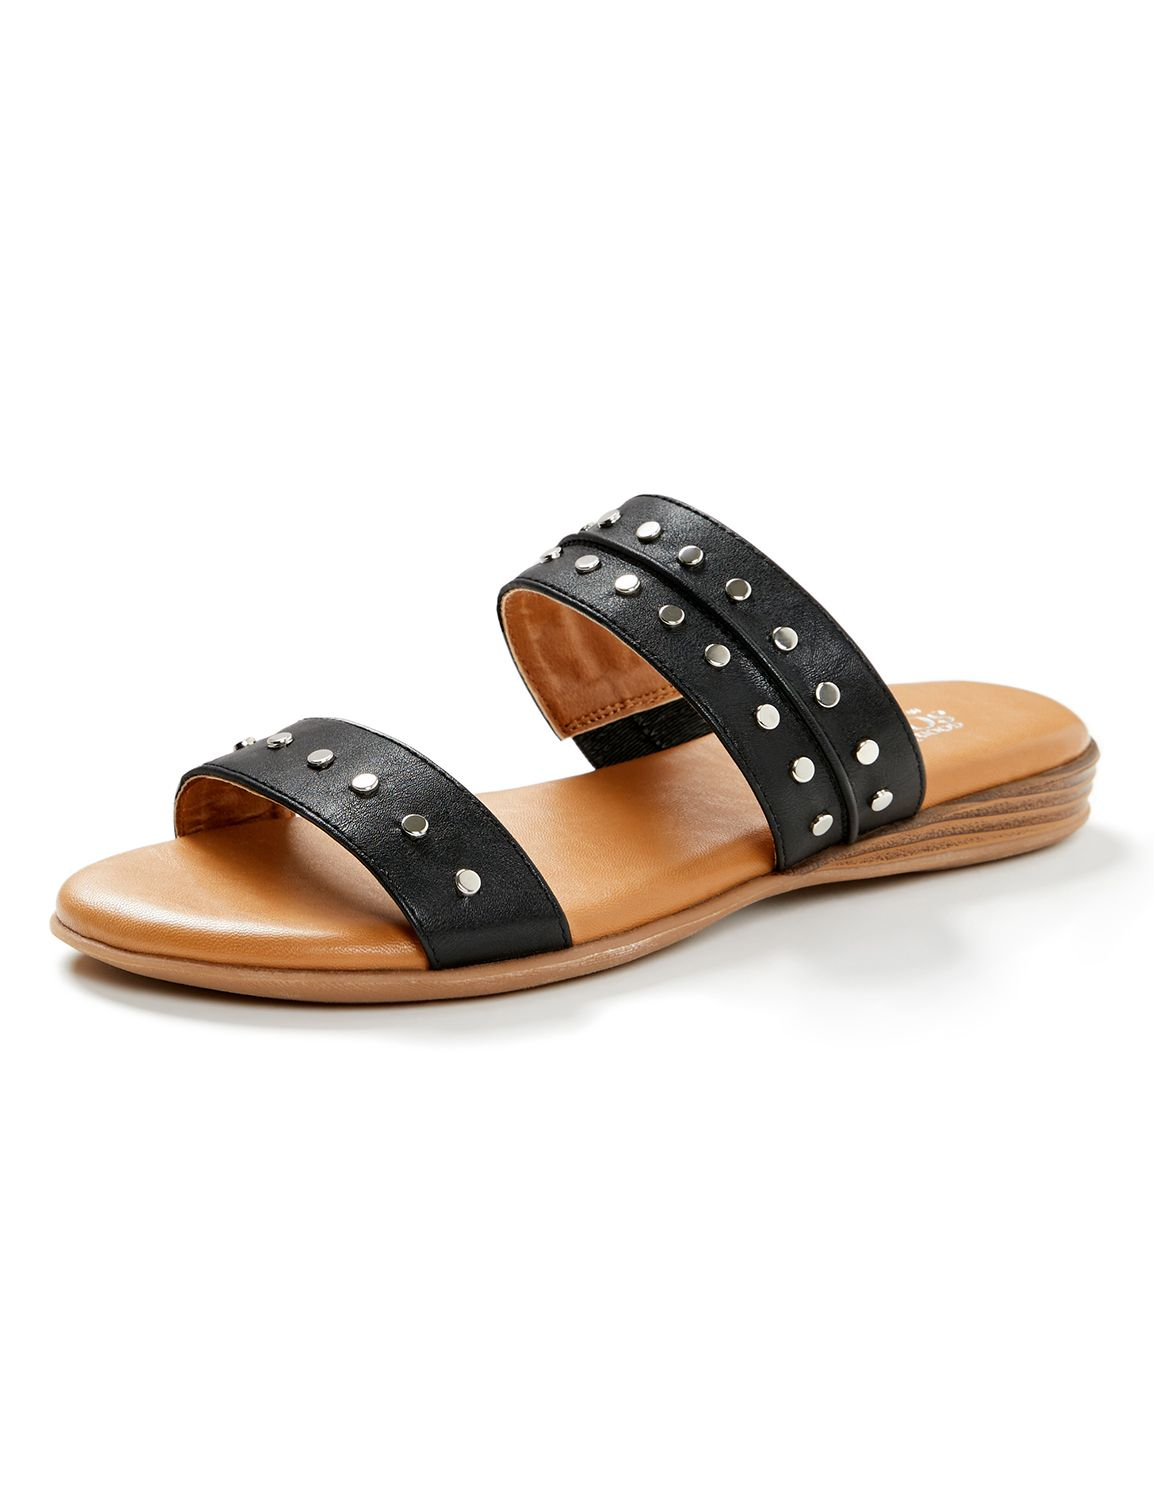 Good Soles Studded Sandal Double Strap w/ Nail Heads Slip on MP-300097244